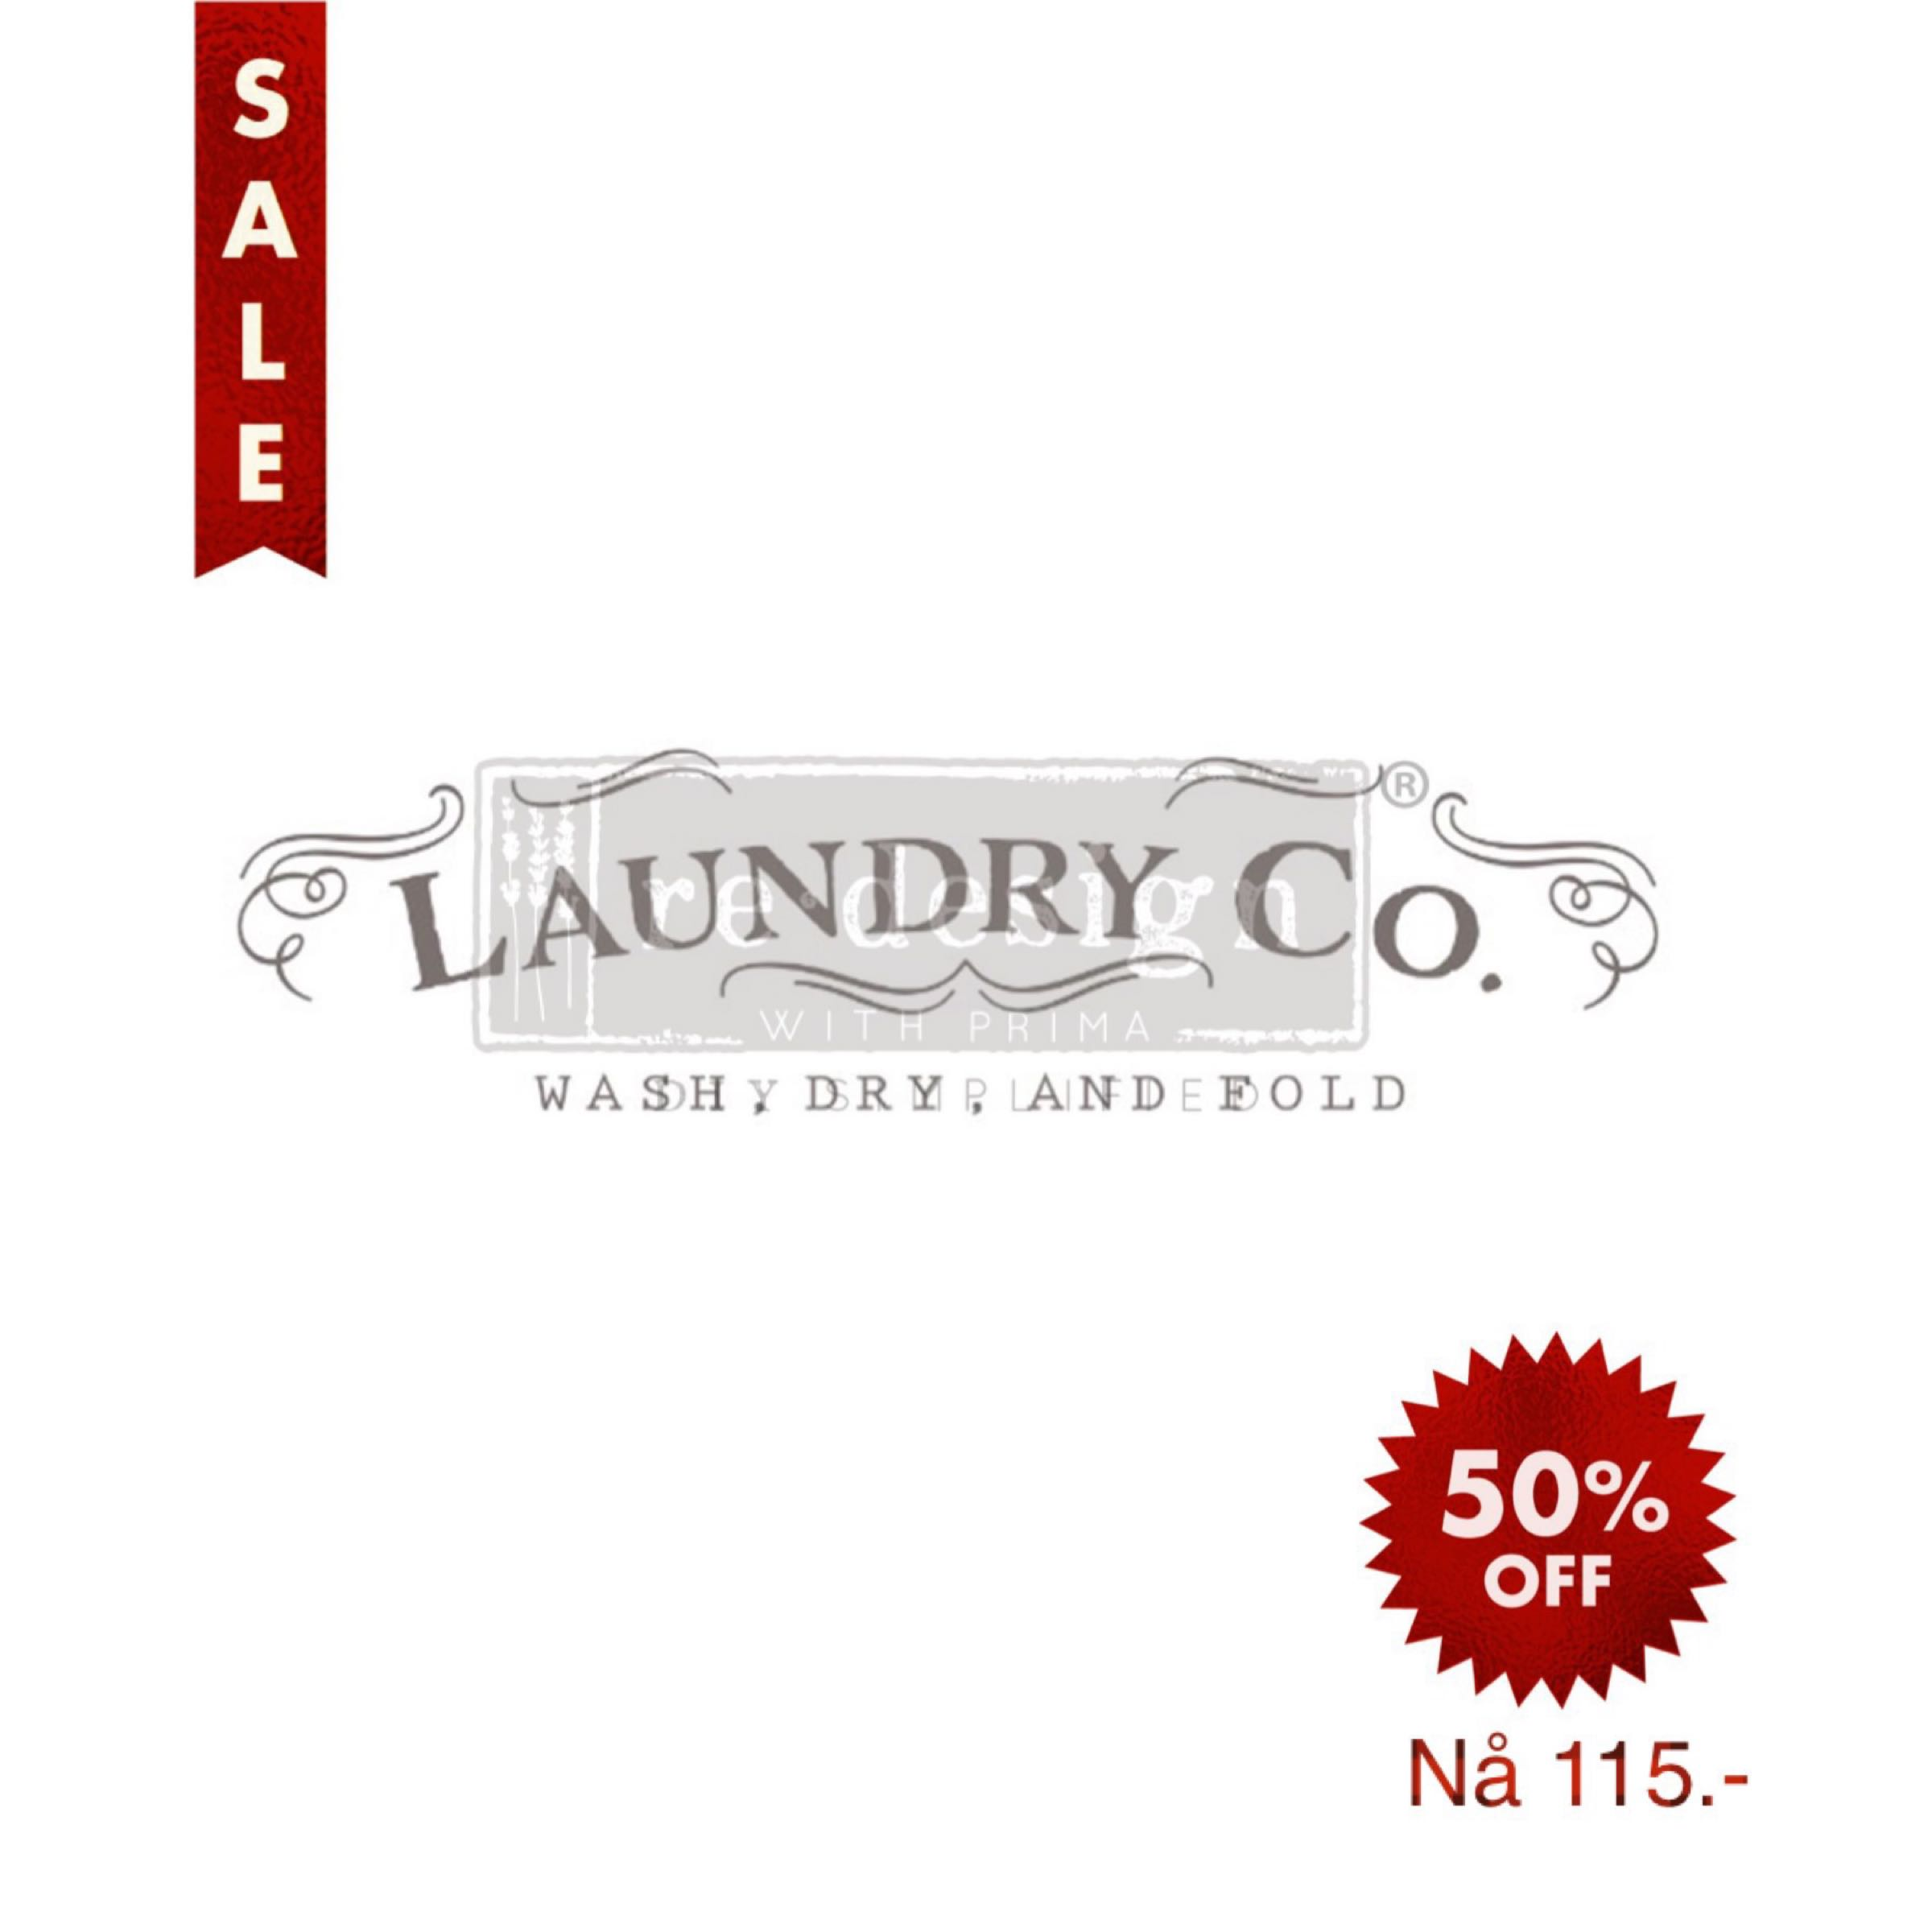 Re-Design with Prima Decor Transfer - Laundry OUT OF STOCK